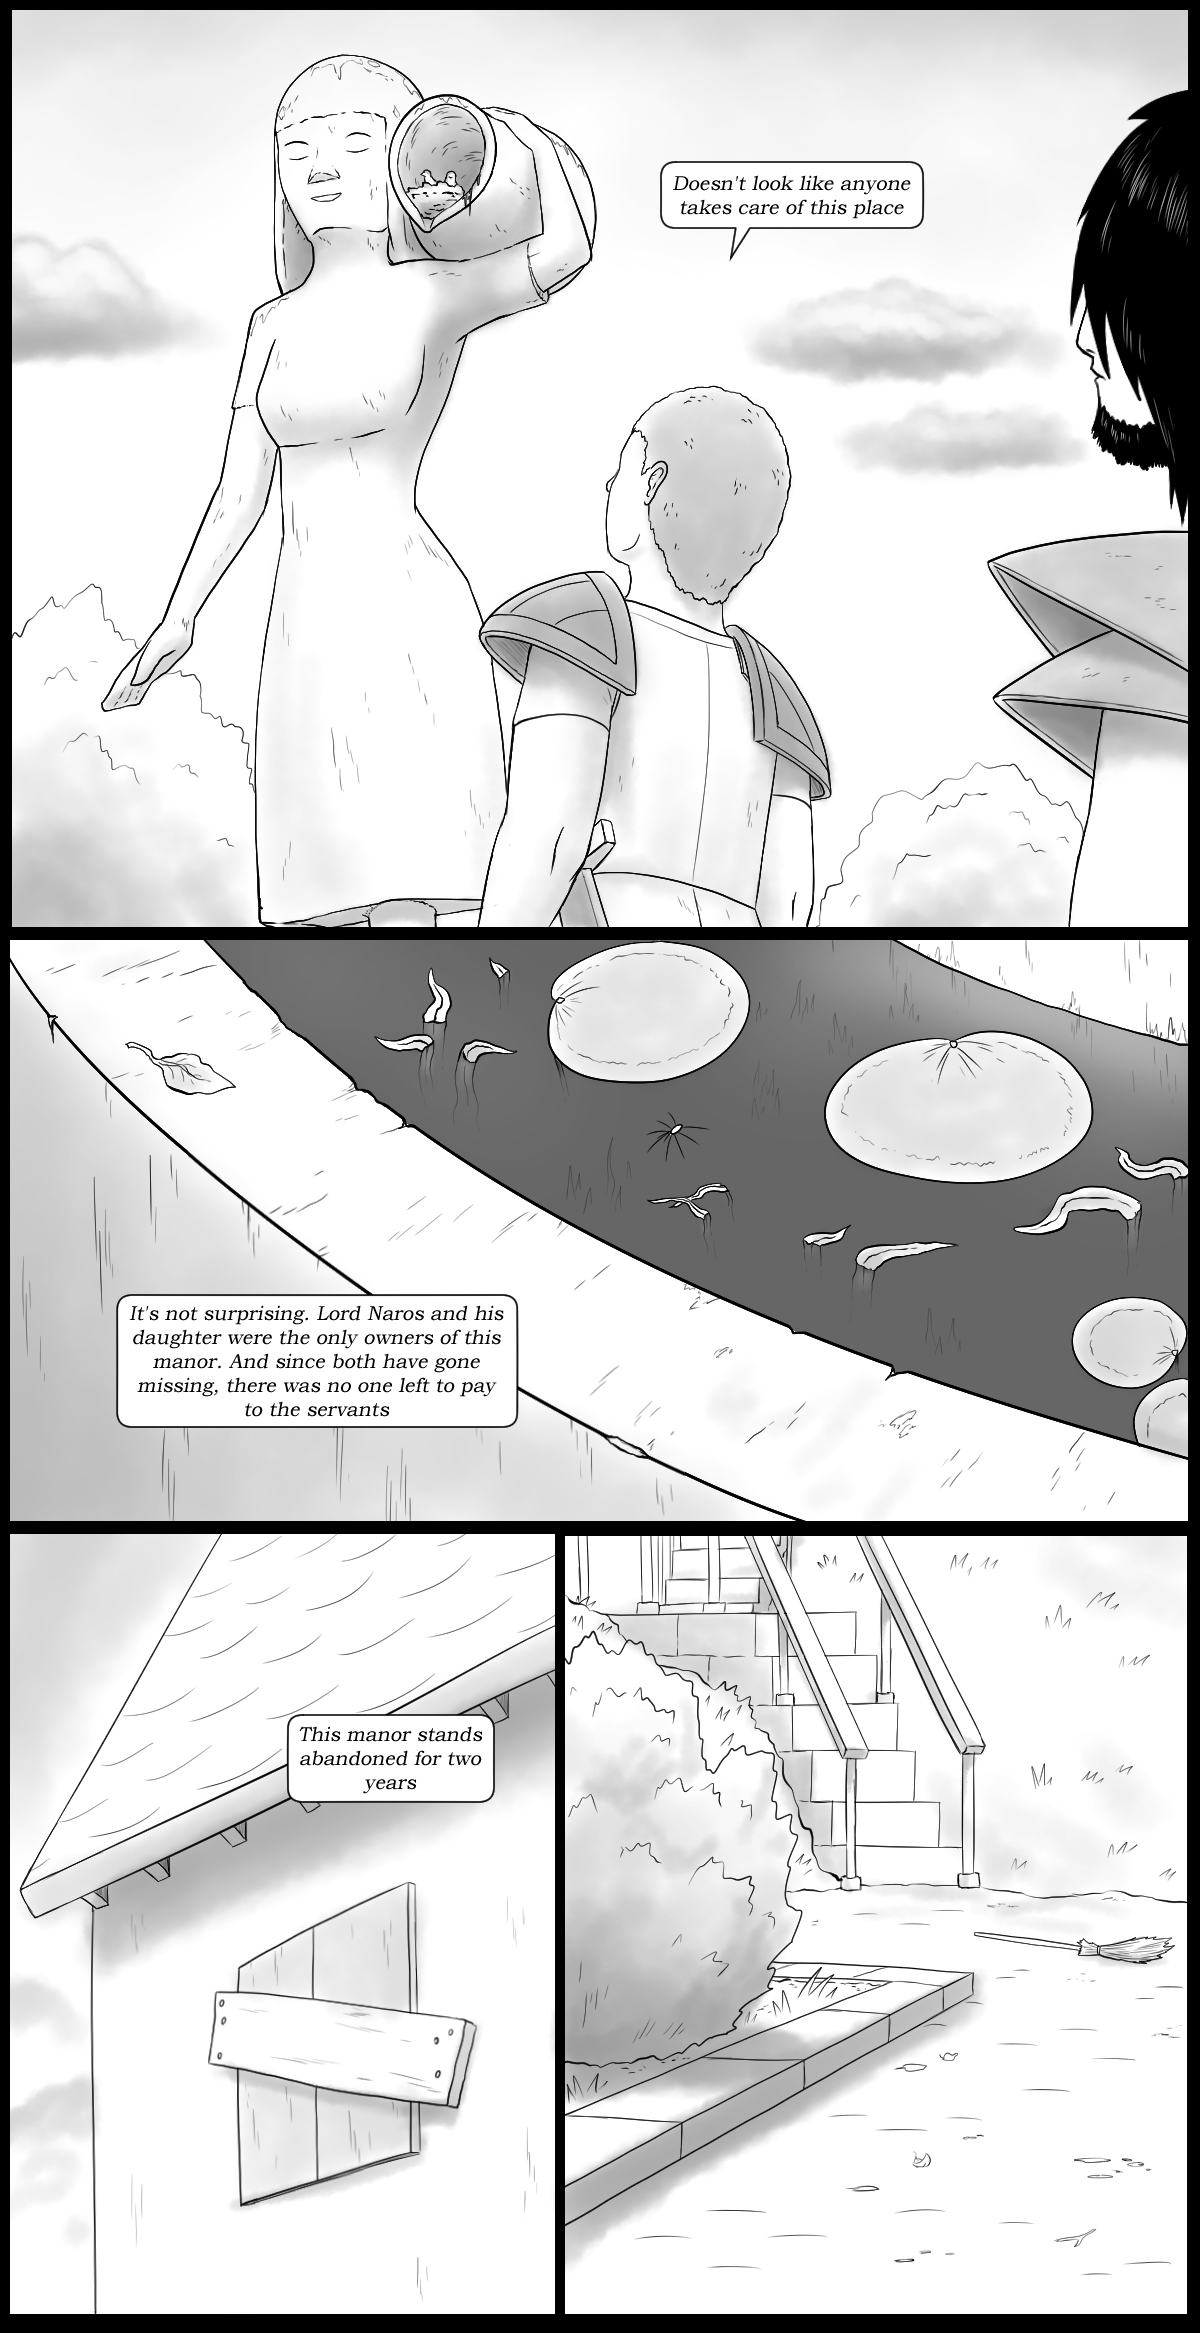 Page 76 - Abandoned